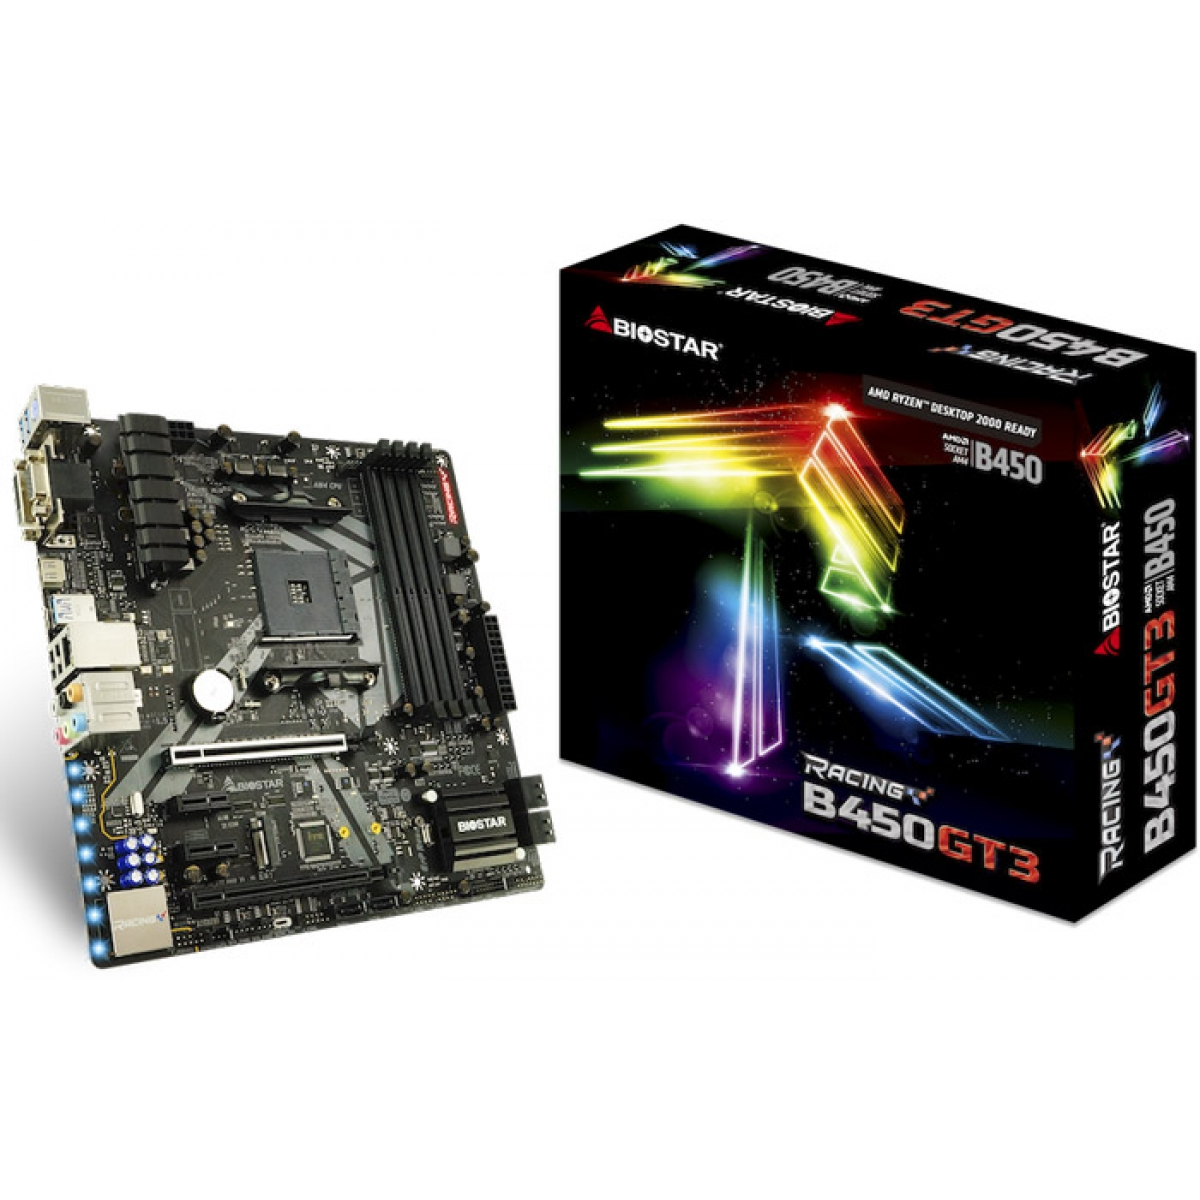 Placa Mãe Biostar Racing B450GT3, Chipset B450, AMD AM4, mATX, DDR4